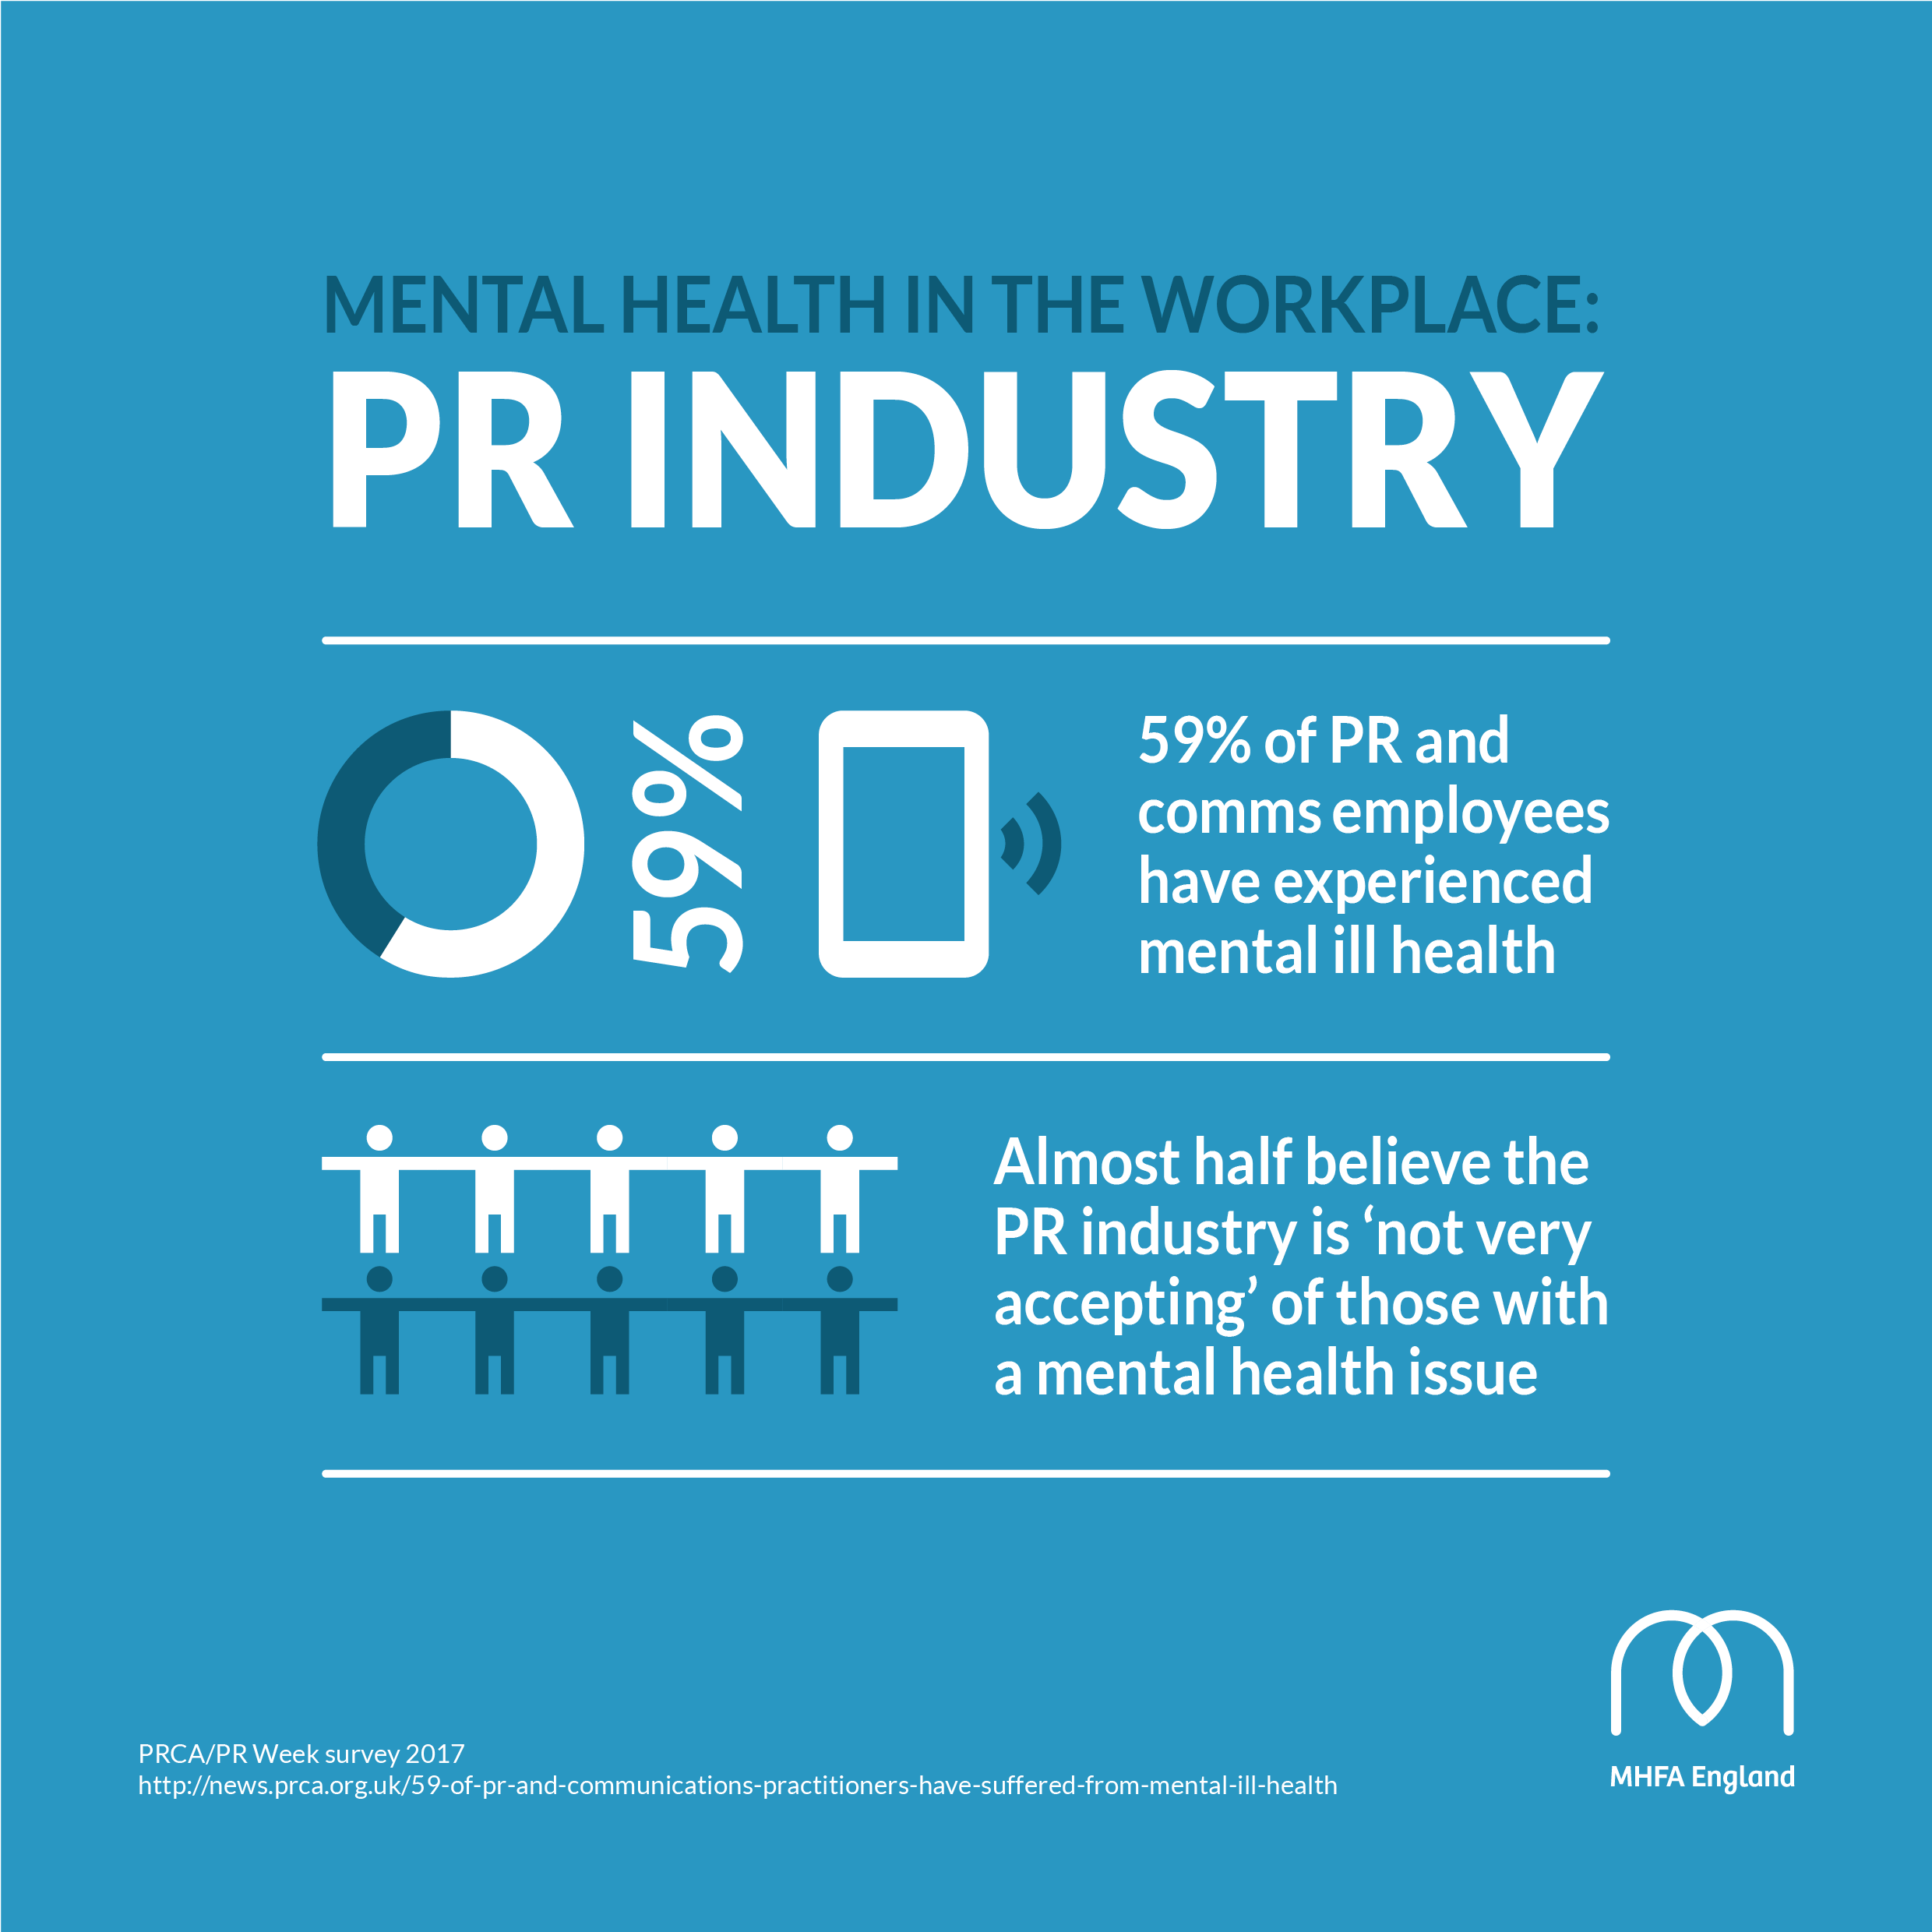 Social media graphic - Mental health in the PR industry